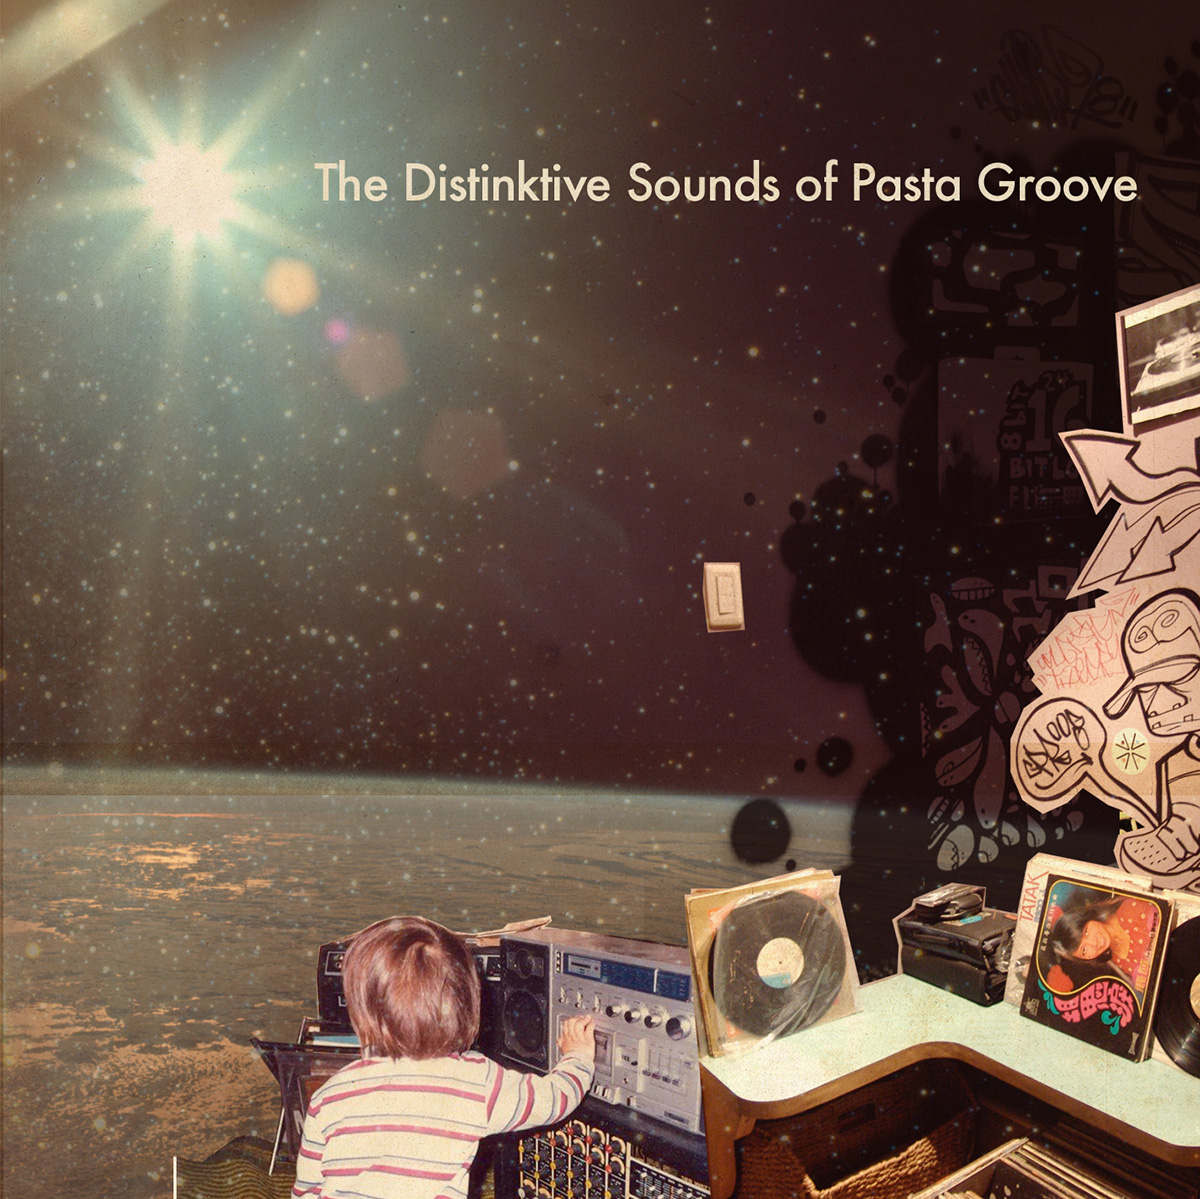 The Distinktive Sounds of Pasta Groove